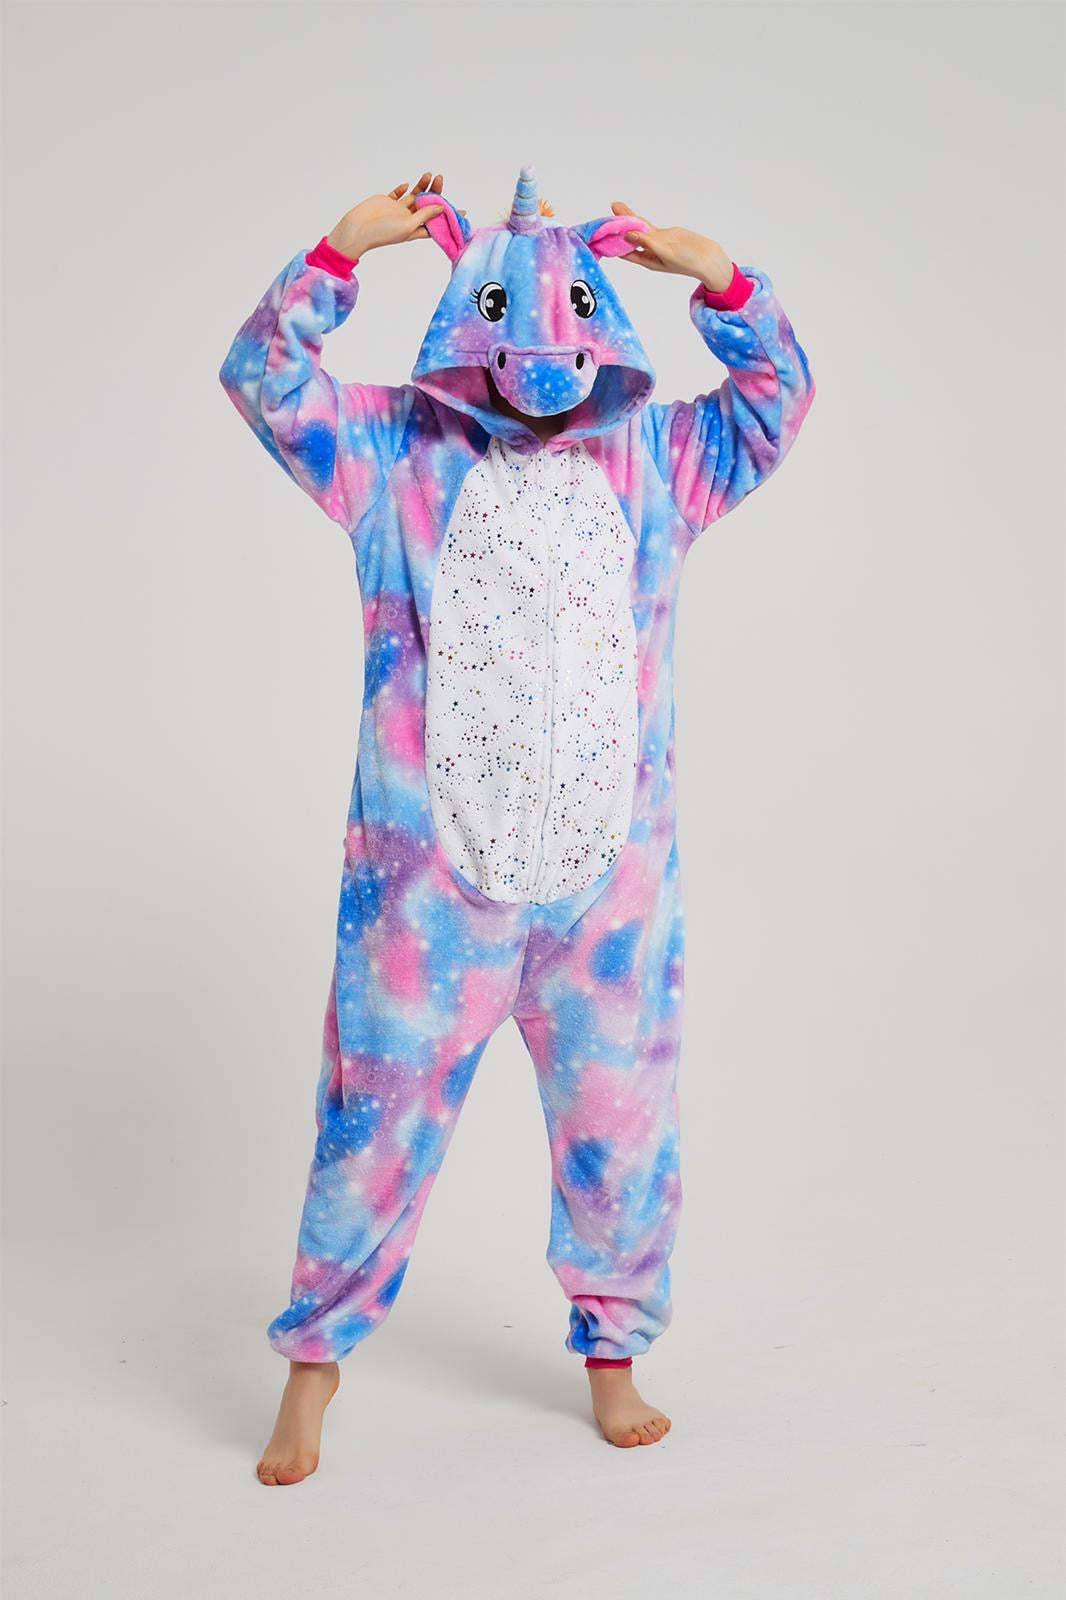 Onesie World Unisex Animal Pyjamas - Purple Unicorn with Sparkling Stars Adult Onesie (Cosplay / Nightwear / Halloween / Carnival / Novelty Costume)